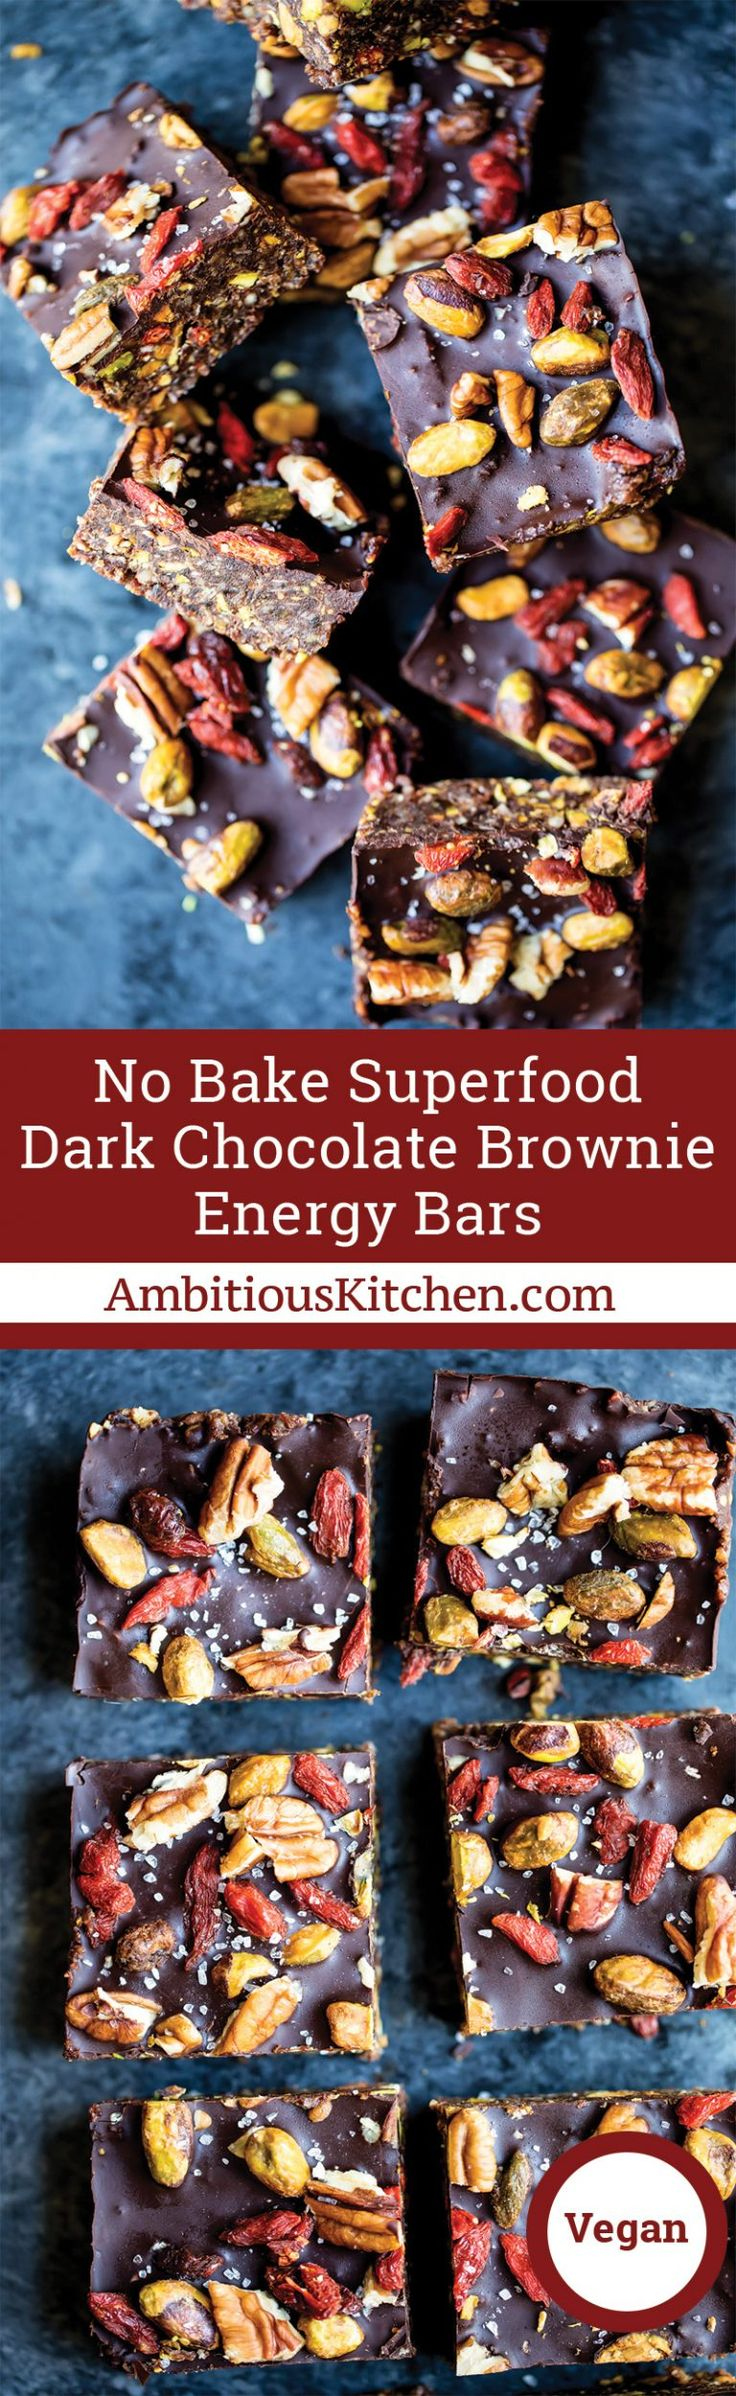 No bake superfood brownie energy bars packed with pistachios, pecans, walnuts, chia seeds, coconut and dried fruit! The perfect healthy snack!